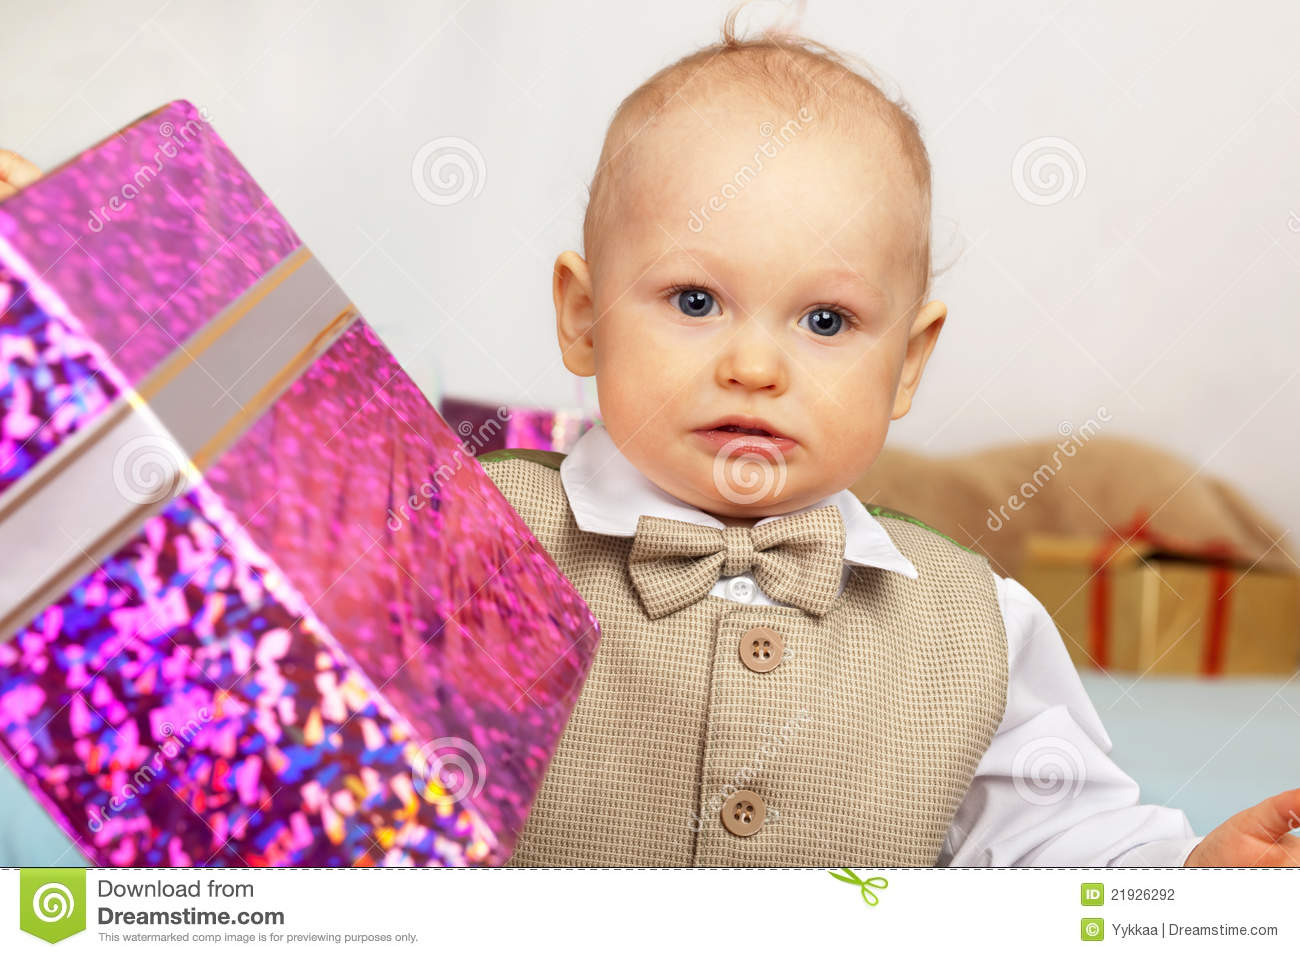 Baby Gift 1 Year Old : One year old baby with gift stock photography image